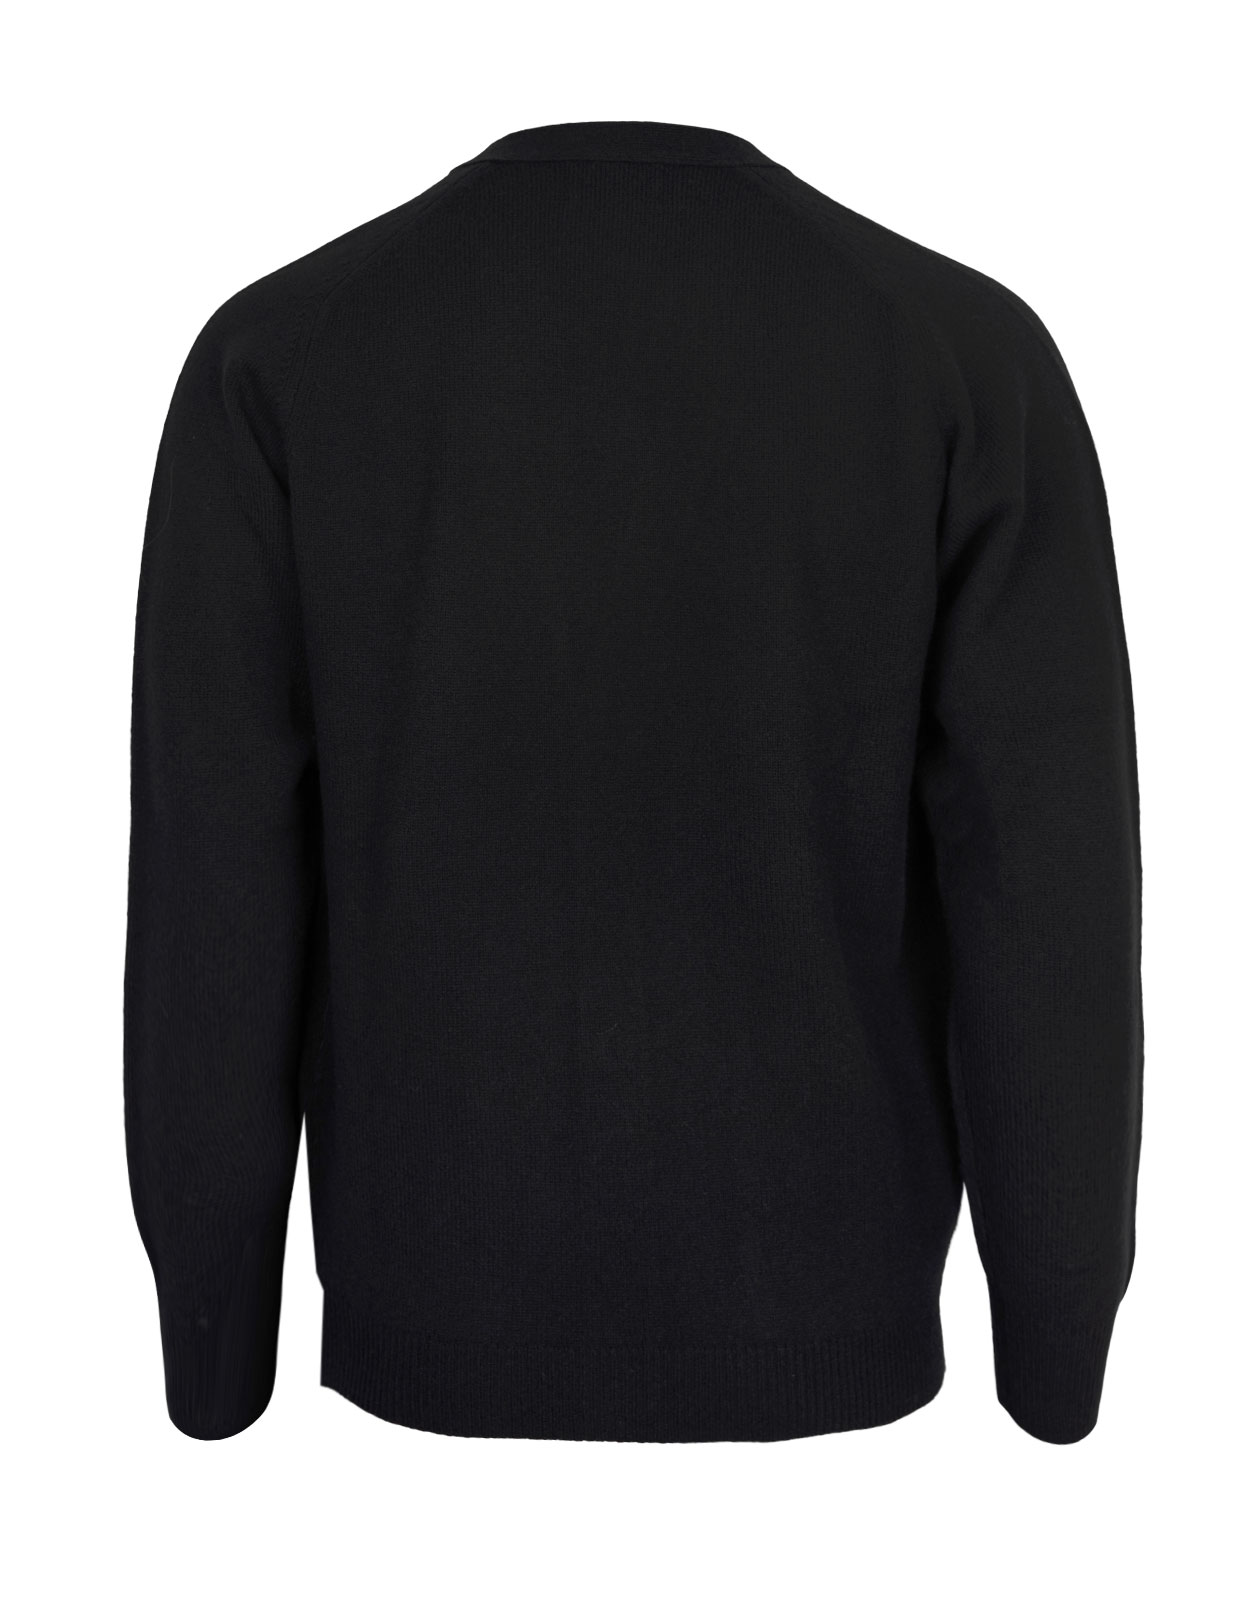 Cornwall Vee Neck Cardigan Black